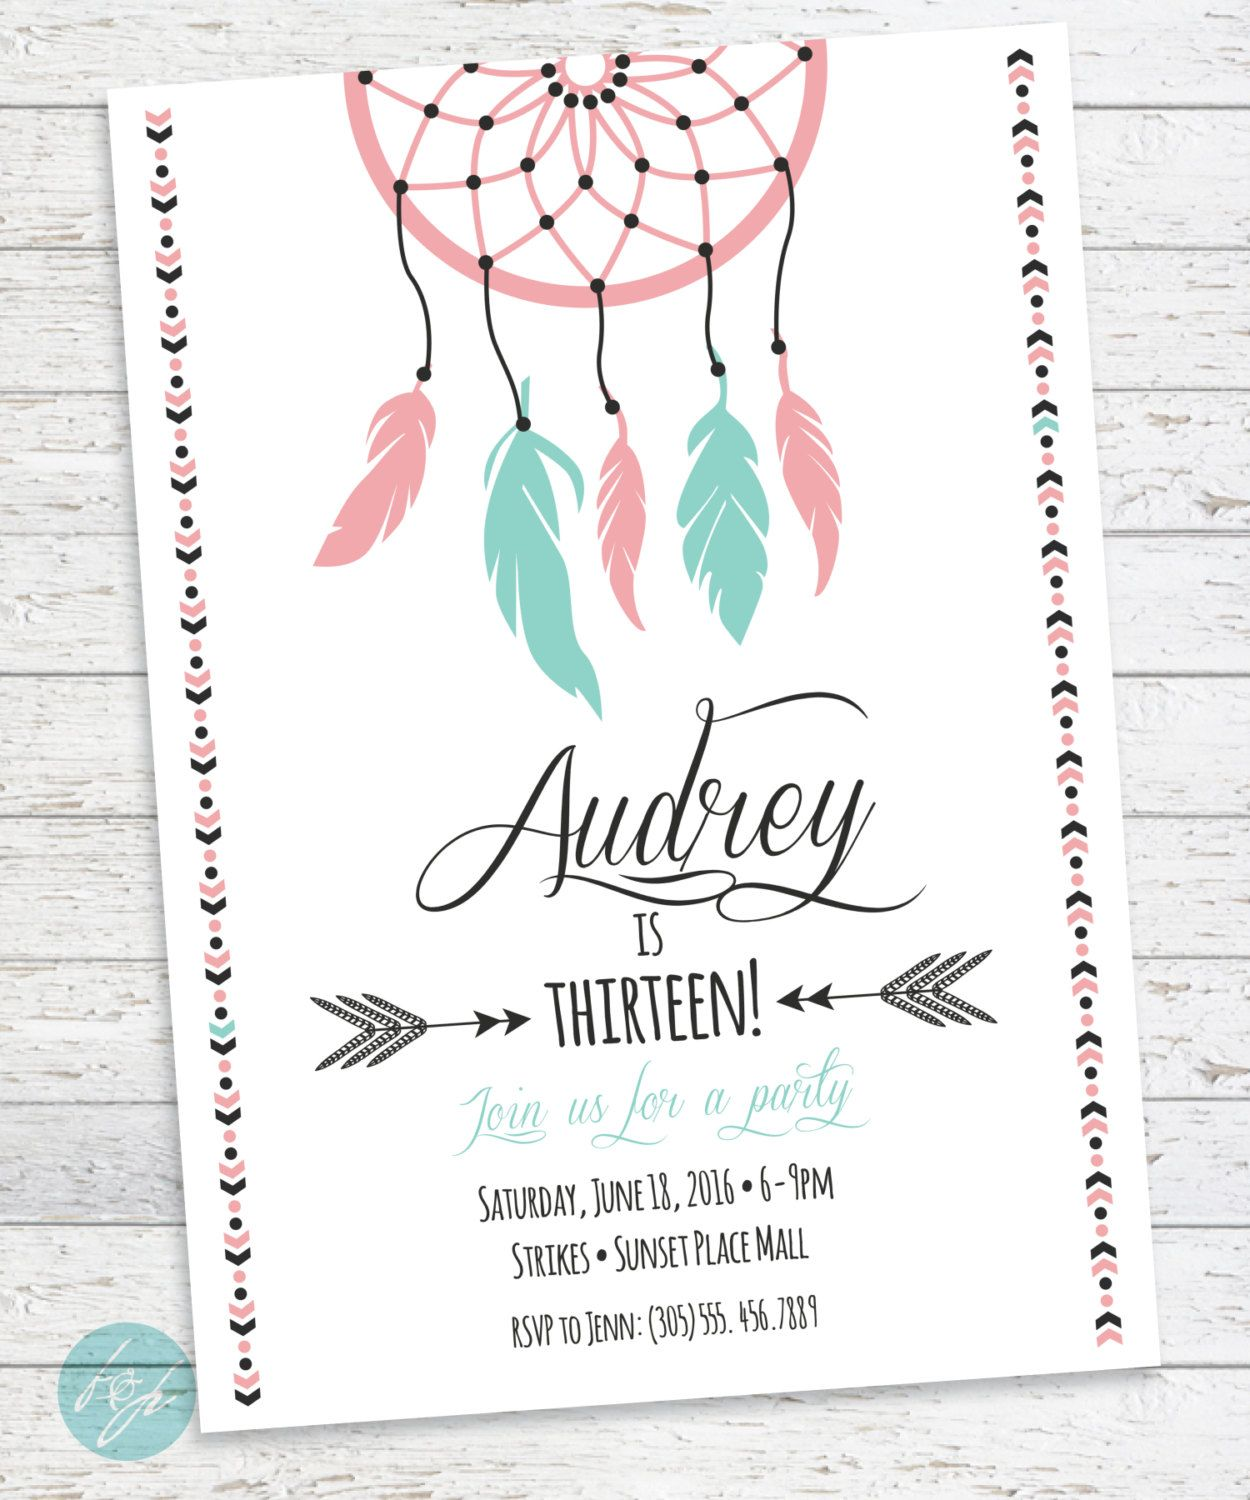 boho birthday invitation aztec tribal invitation bohemian boho birthday invitation aztec tribal invitation bohemian printable invitation dream catcher boho